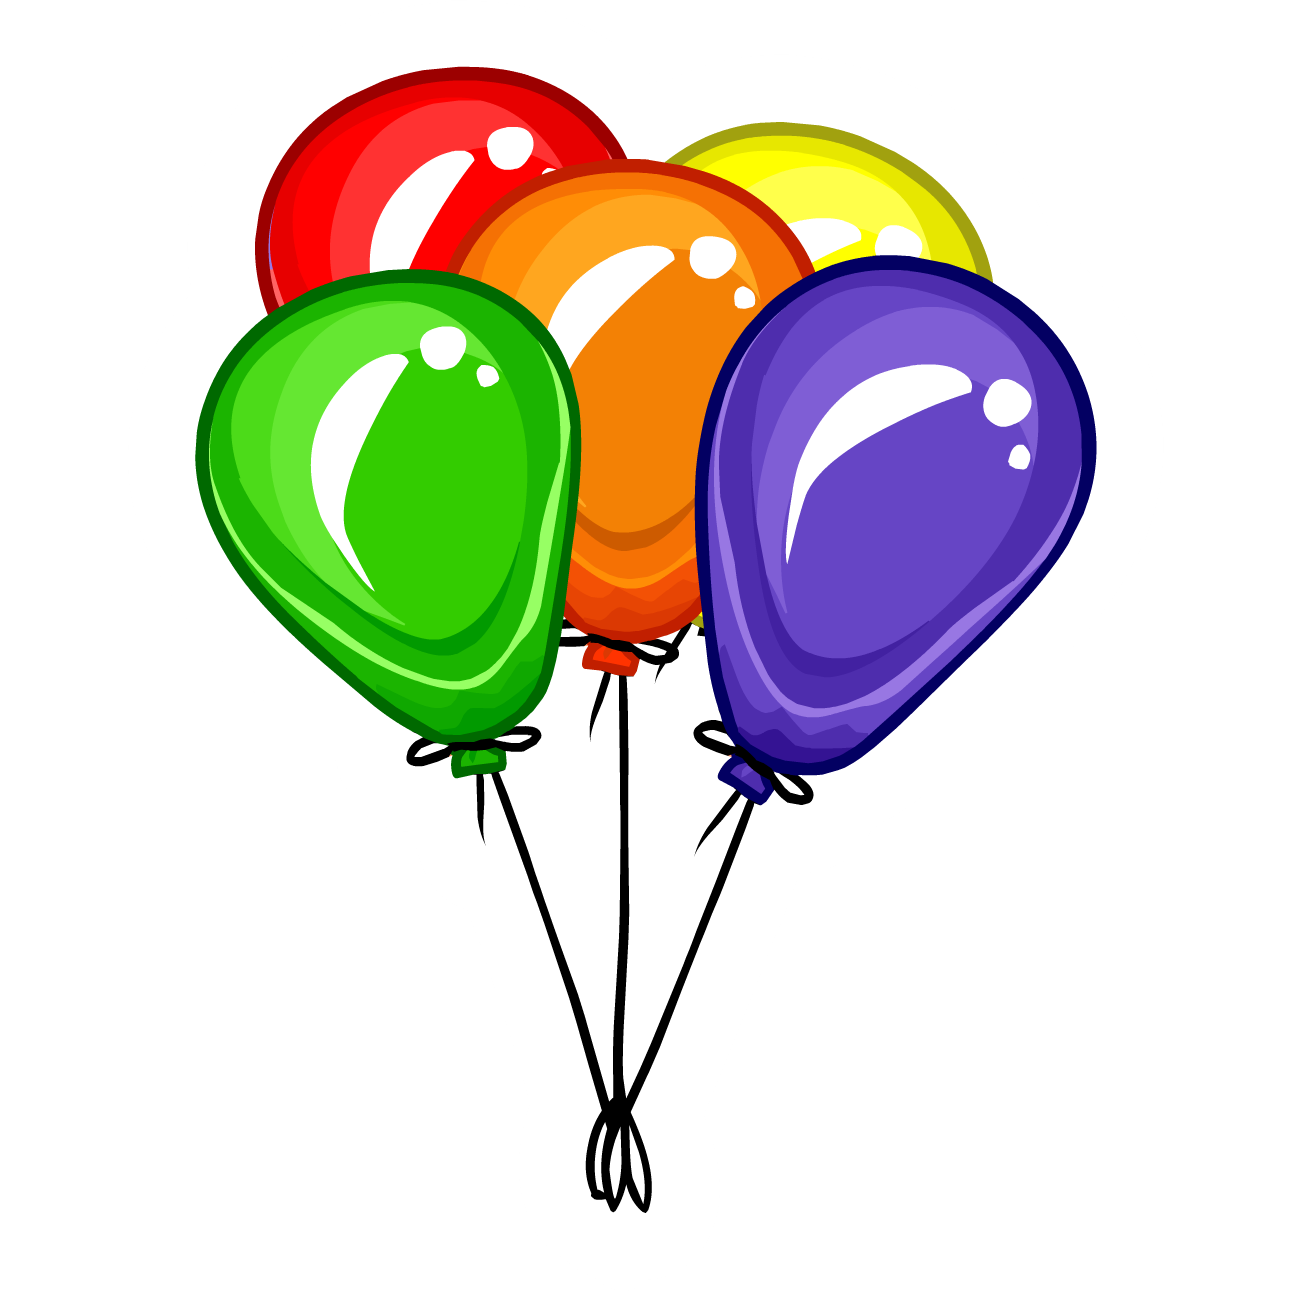 Balloons clipart png. Collection of balloon